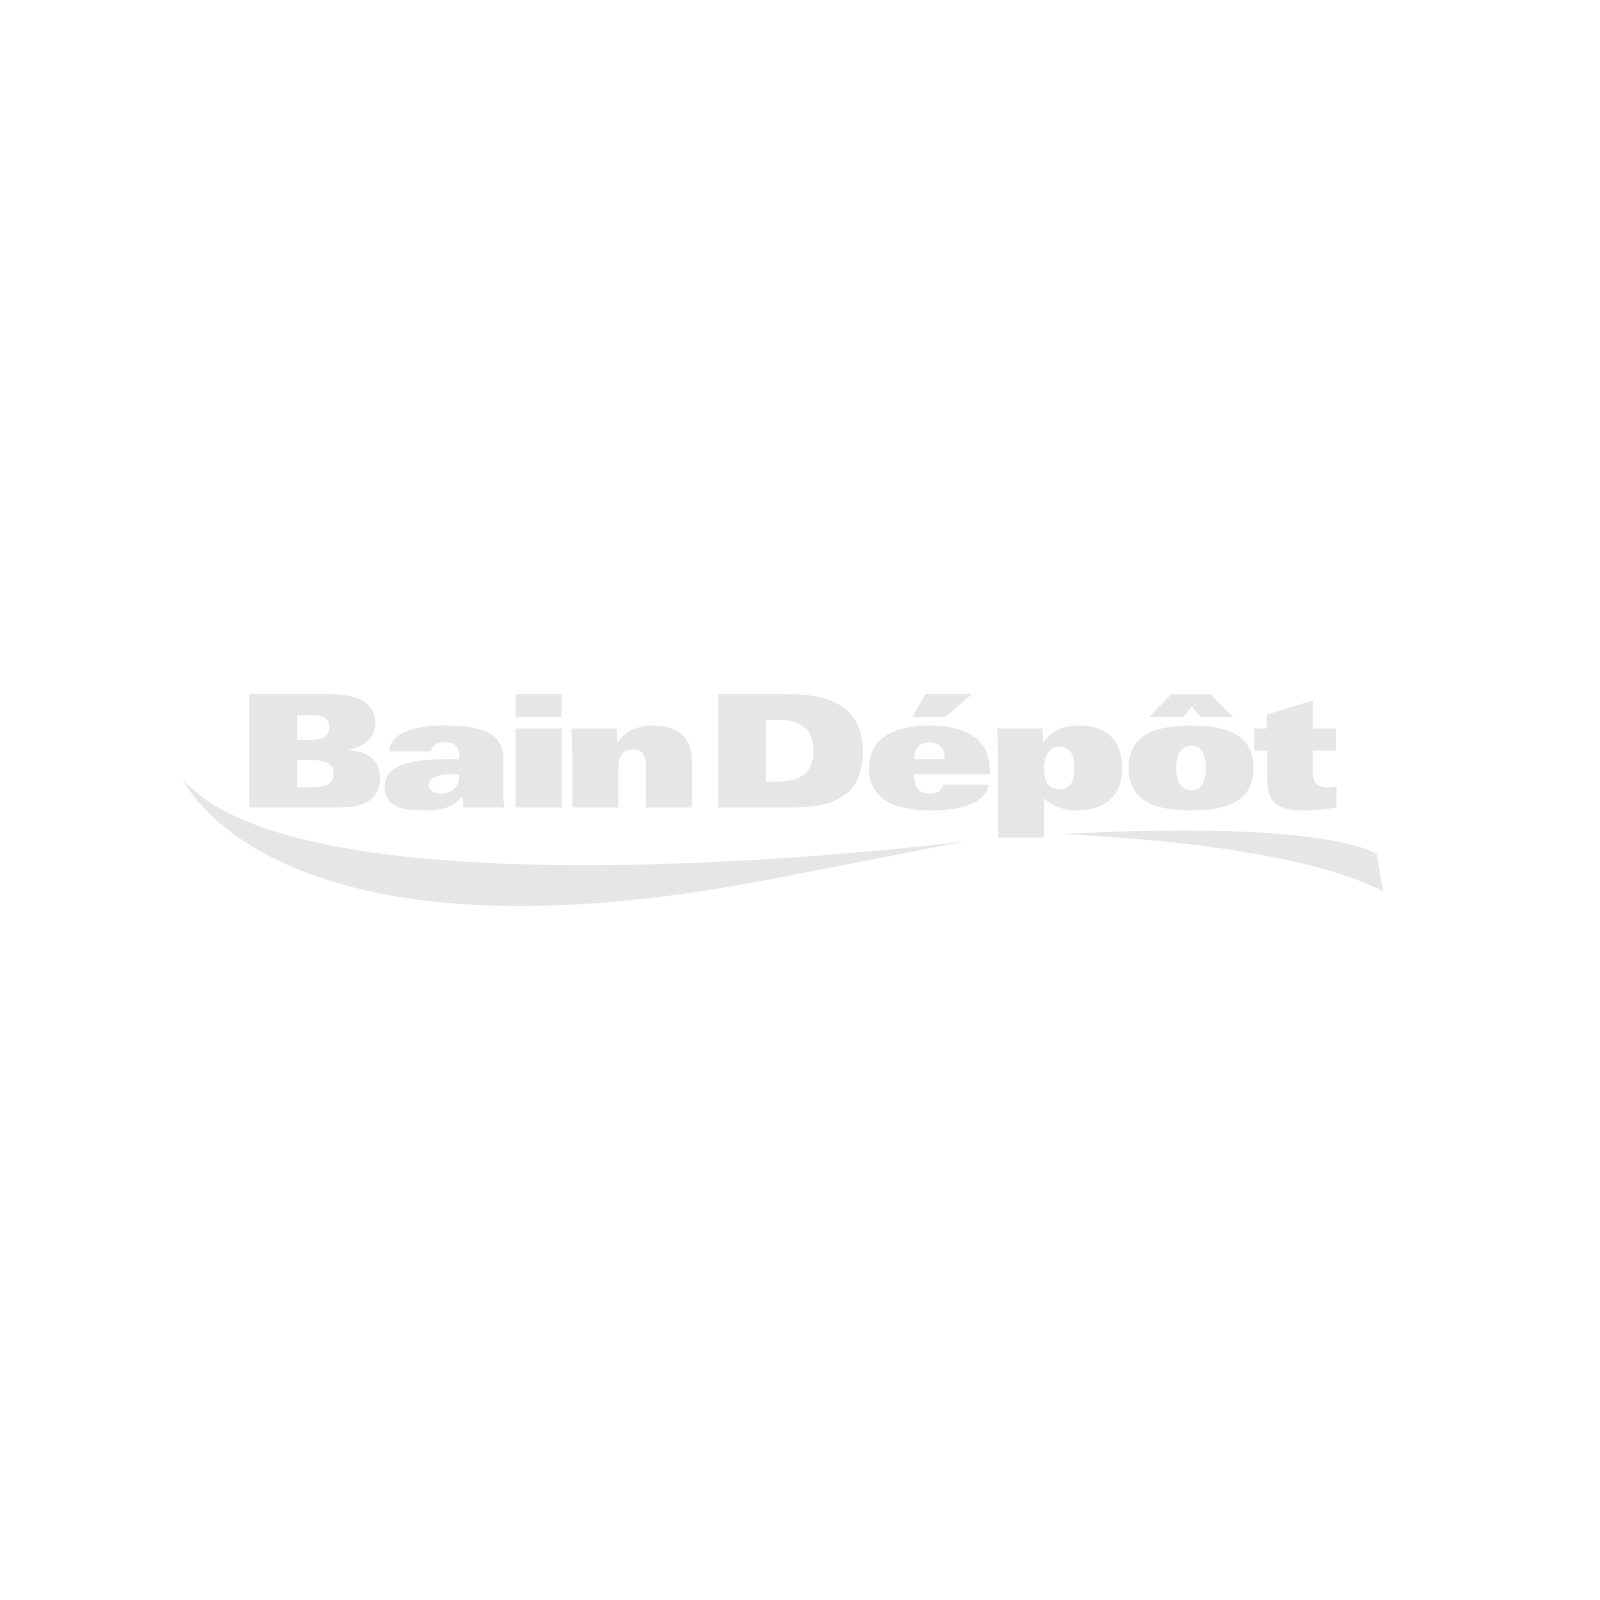 "Classic brushed nickel 4"" bathroom sink faucet"